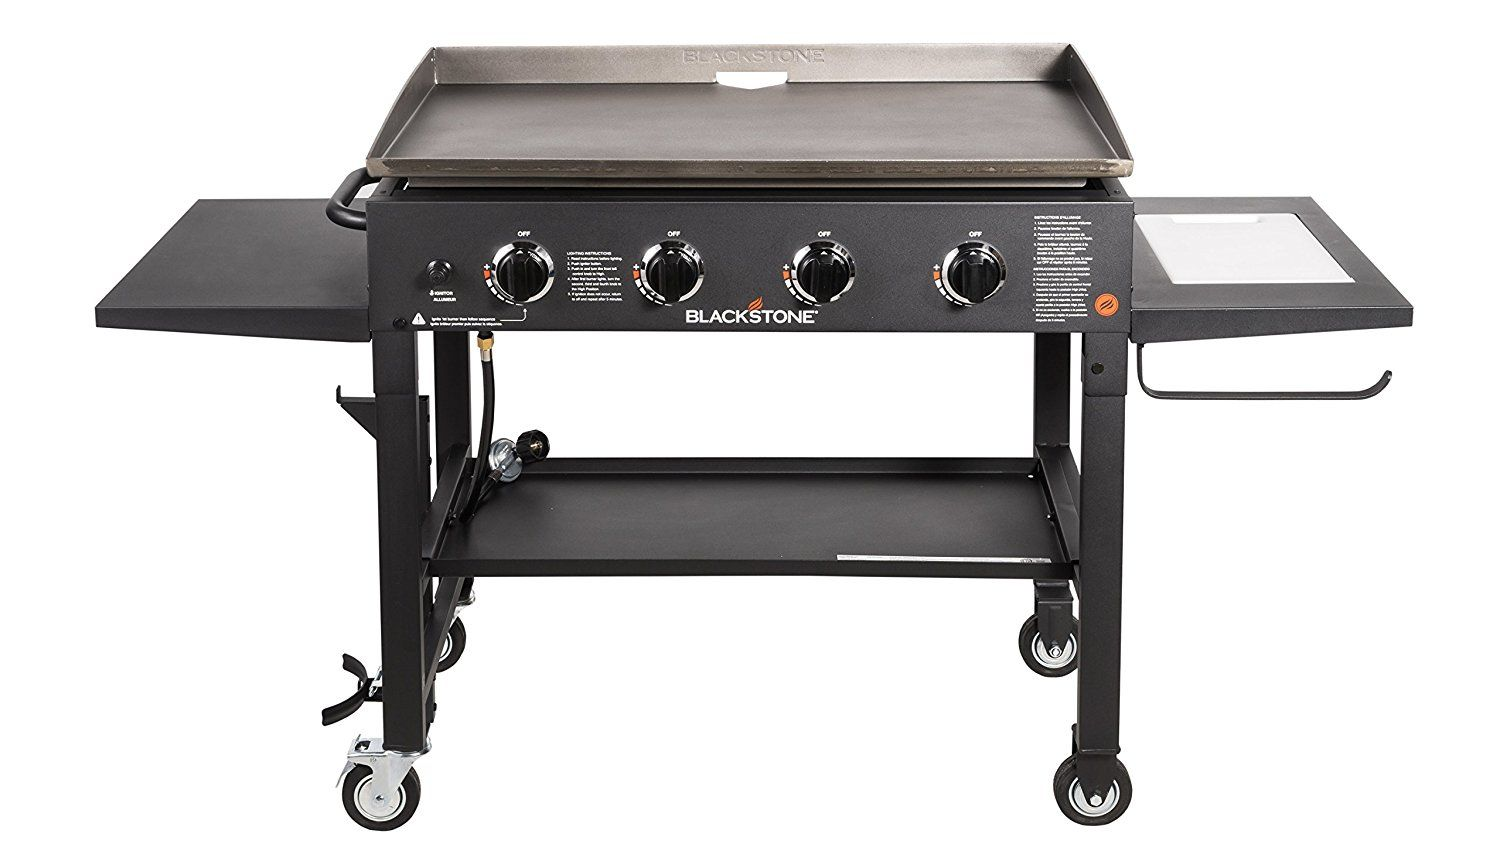 Amazon 36 Inch Outdoor Flat Top Gas Grill Griddle Station Just 209 30 Reg 299 As Of 7 16 2018 2 28 Pm Cdt Gas Grill Best Gas Grills Grilling